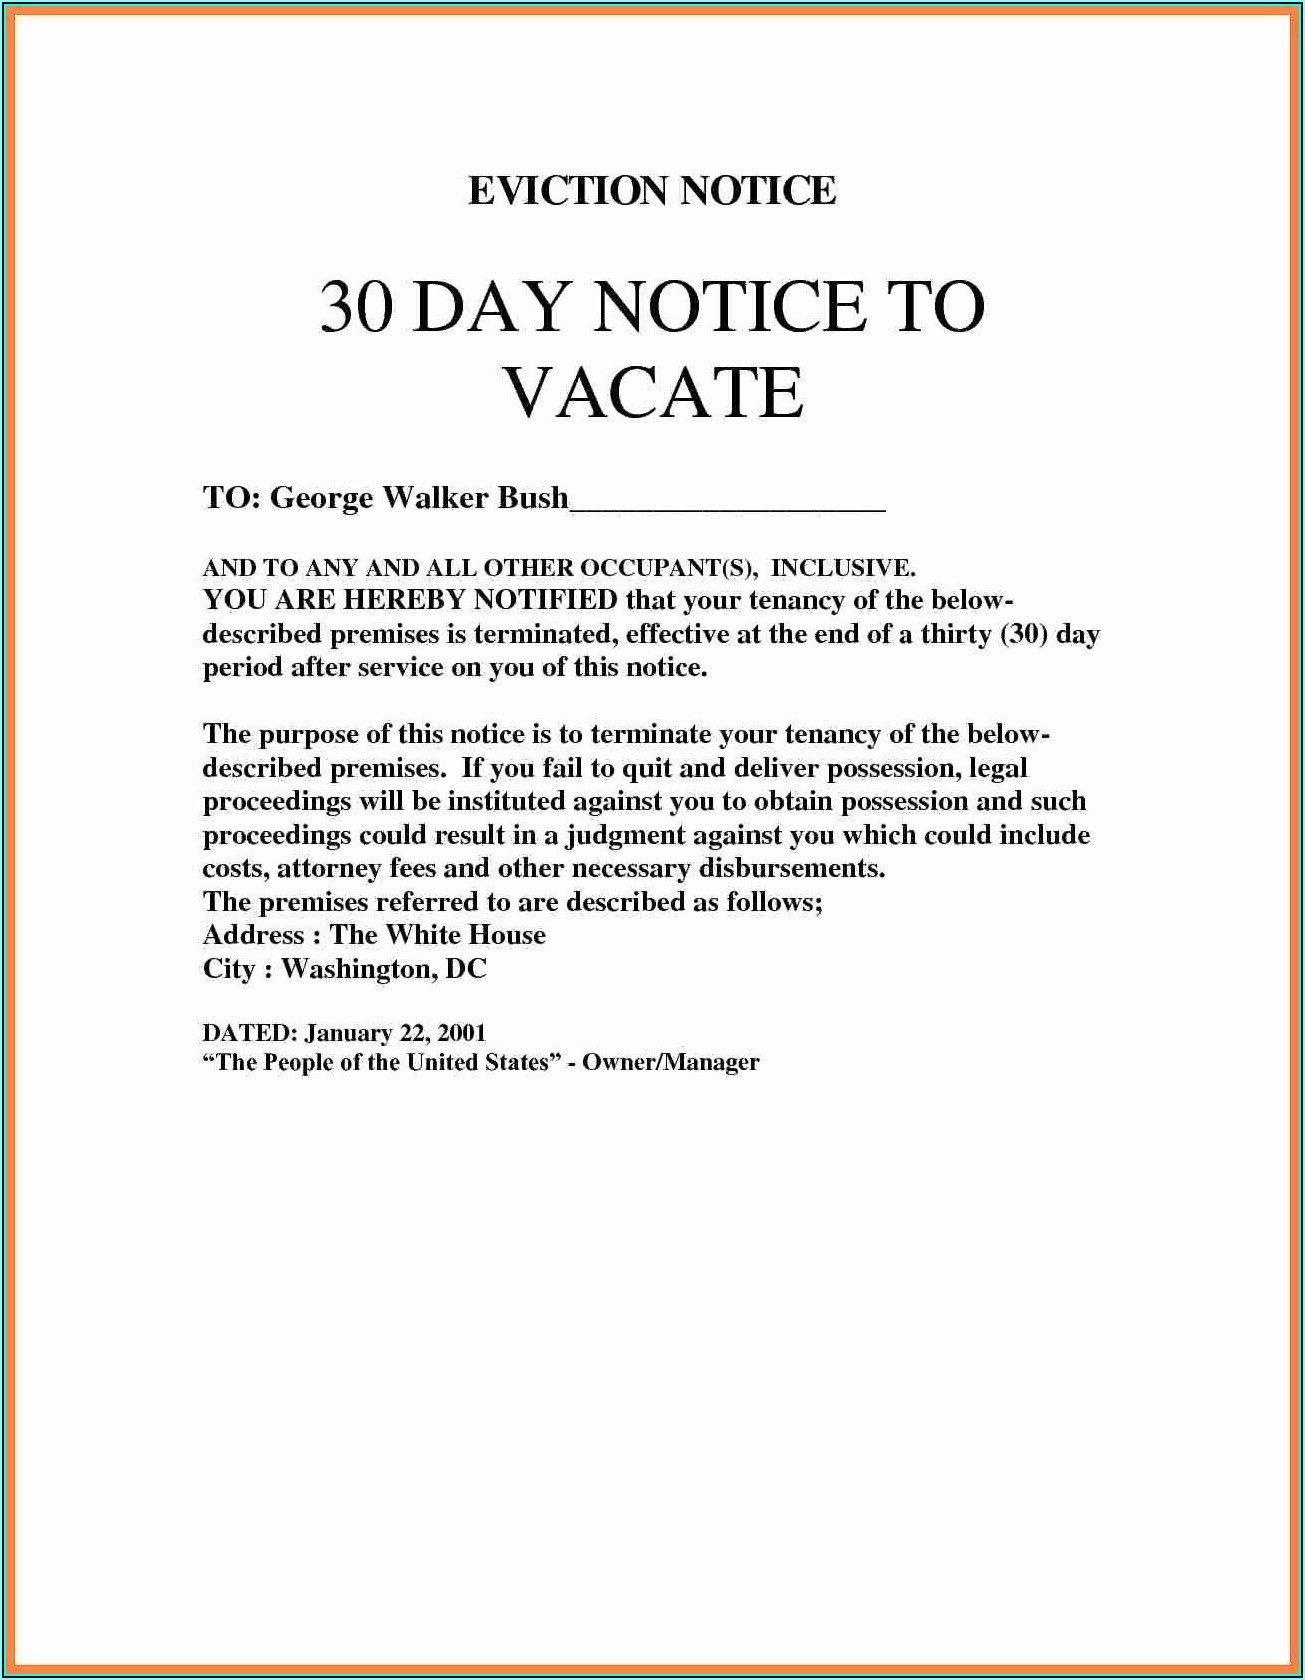 Eviction Notice Template Free Uk